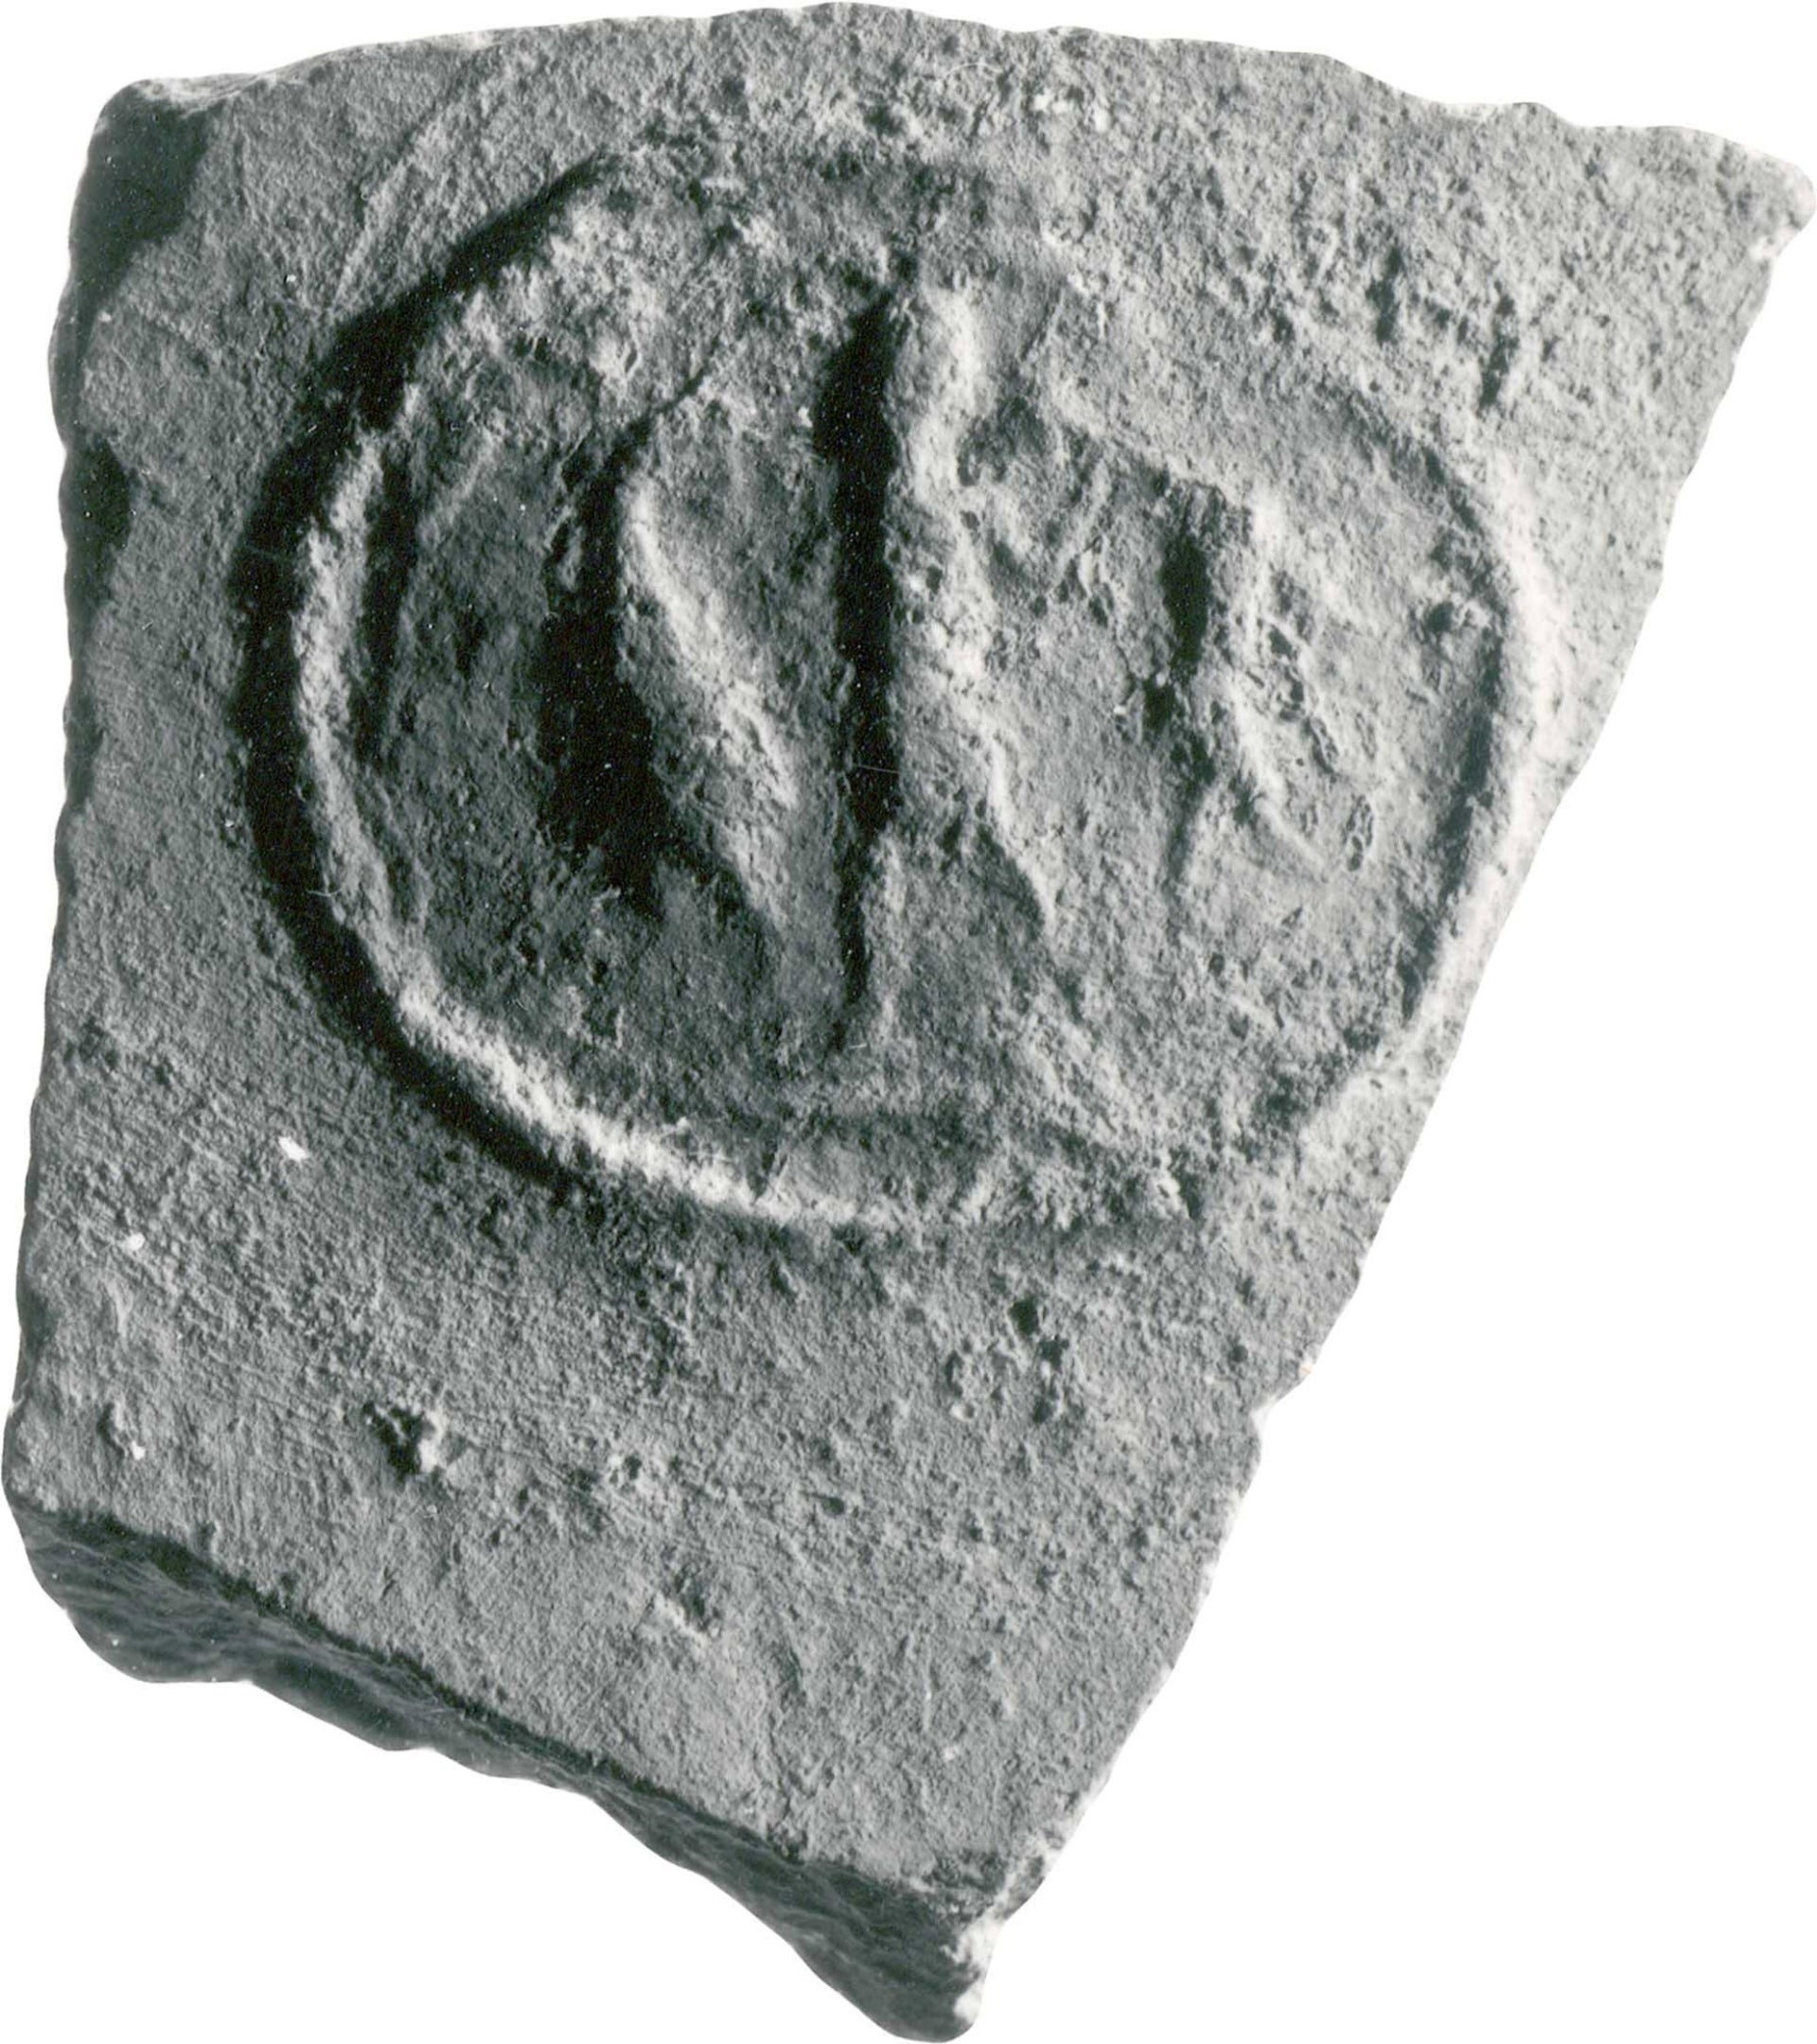 Impression of which several have been found. This seems to have been the heraldic symbol of Dan or the ruler of Dan in the 8th century BCE.